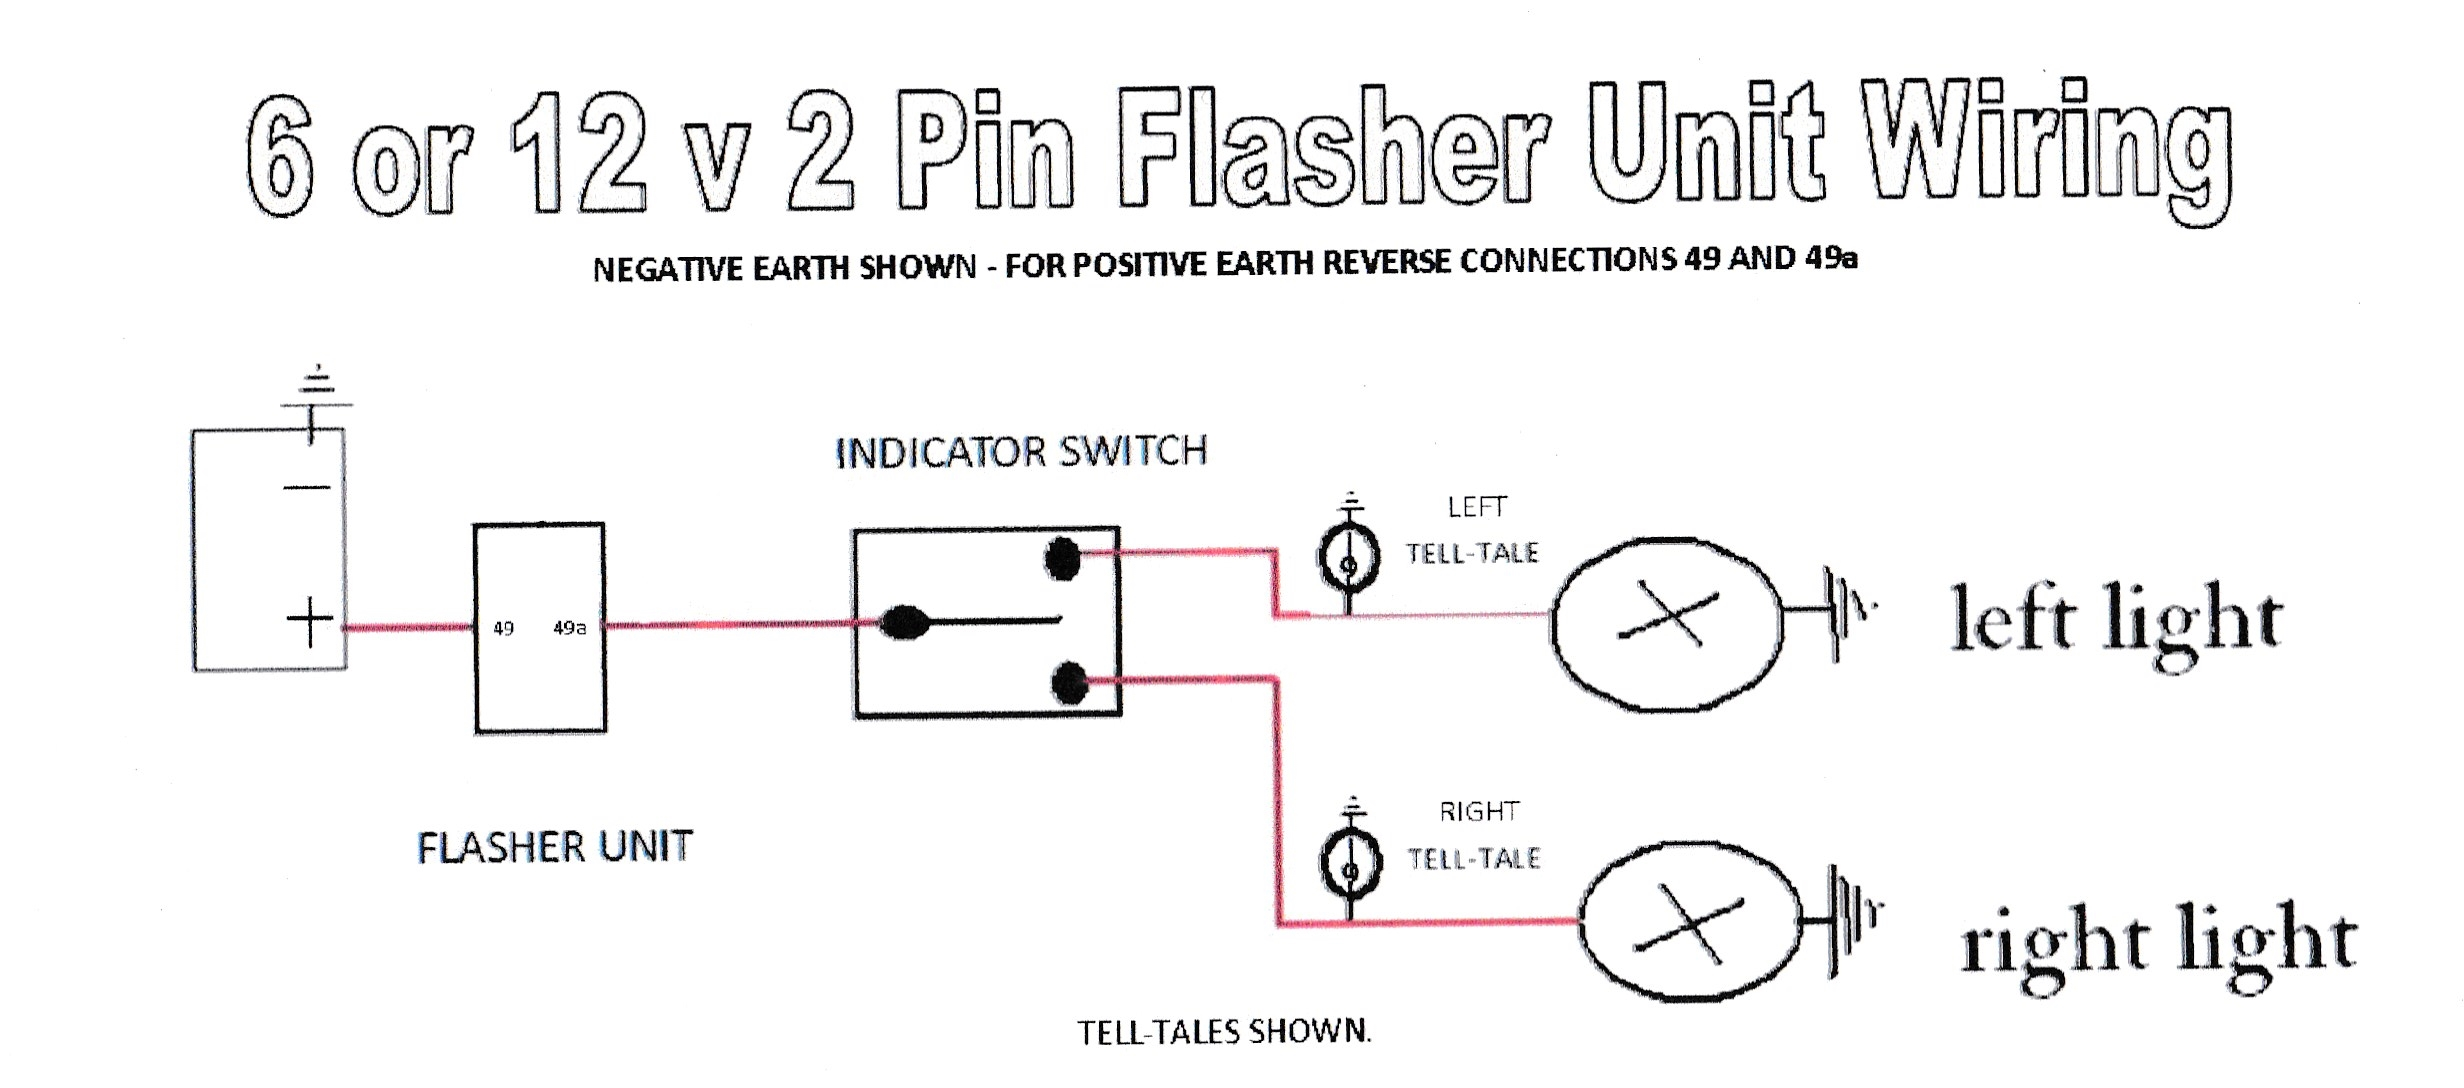 wiring diagrams to assist you with connecting up rh dynamoregulatorconversions com 2 pin indicator relay wiring diagram audew 2 pin flasher relay wiring diagram